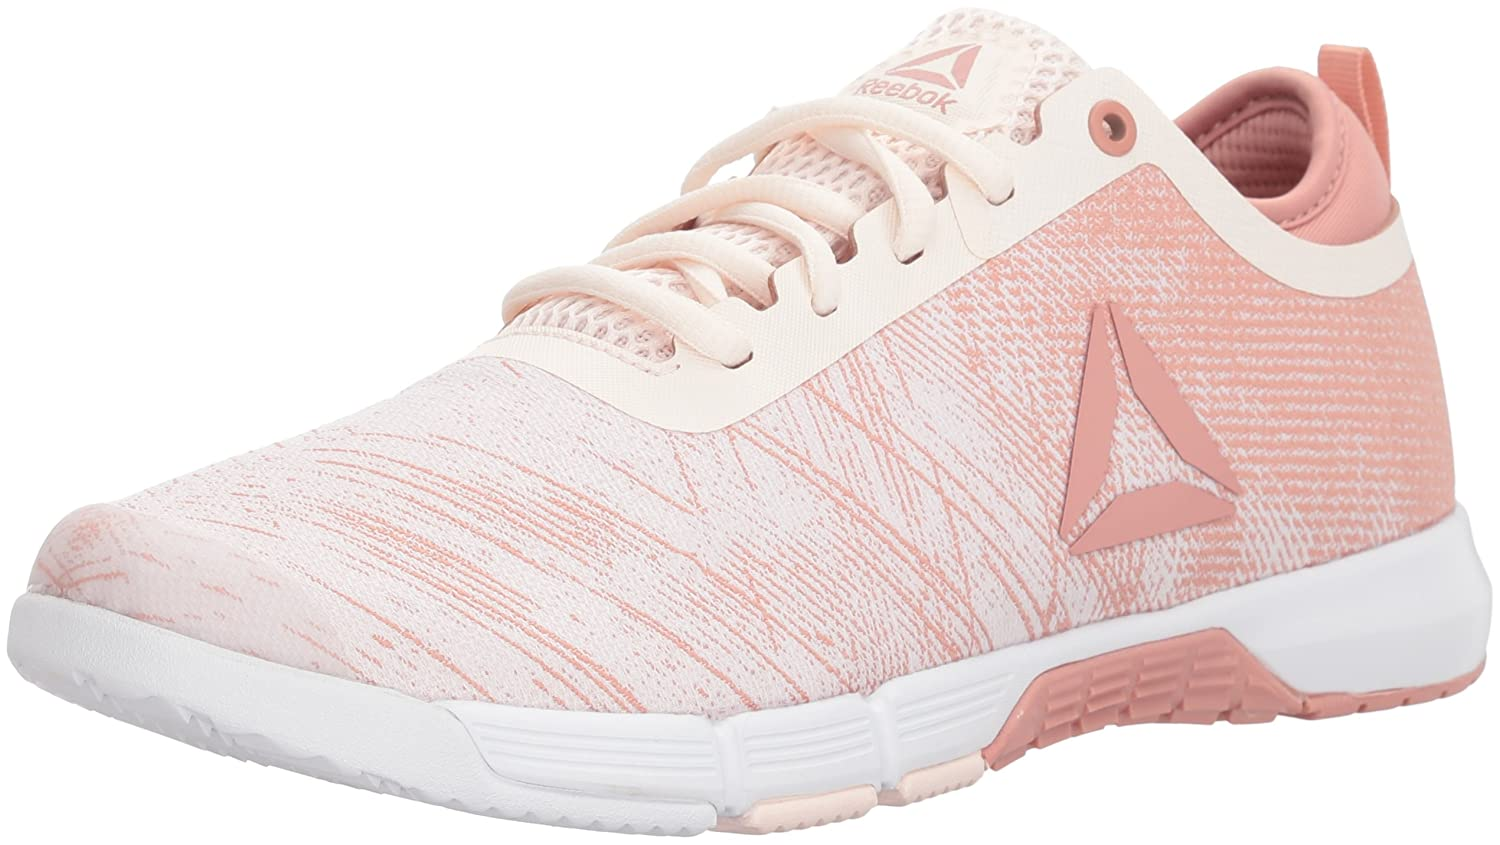 Reebok Women's Speed Her Tr Cross Trainer B073X8YNQG 5.5 B(M) US|Pale Pink/Chalk Pink/White/Silver